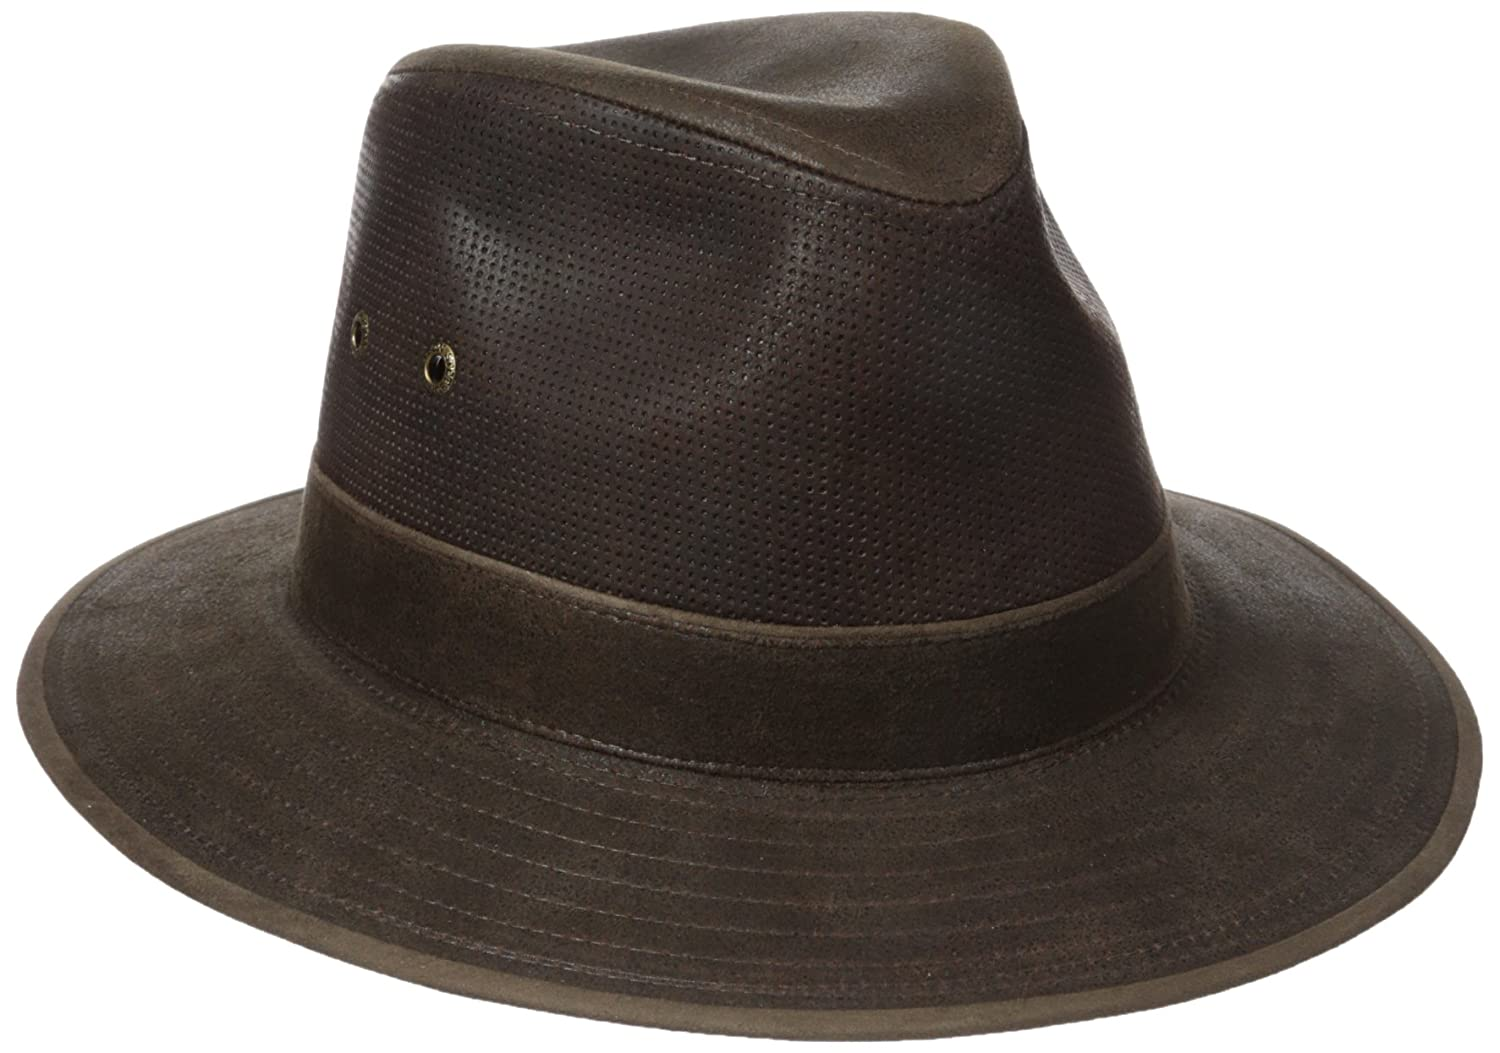 900d09f69 Stetson Men's Weathered Leather Safari Hat